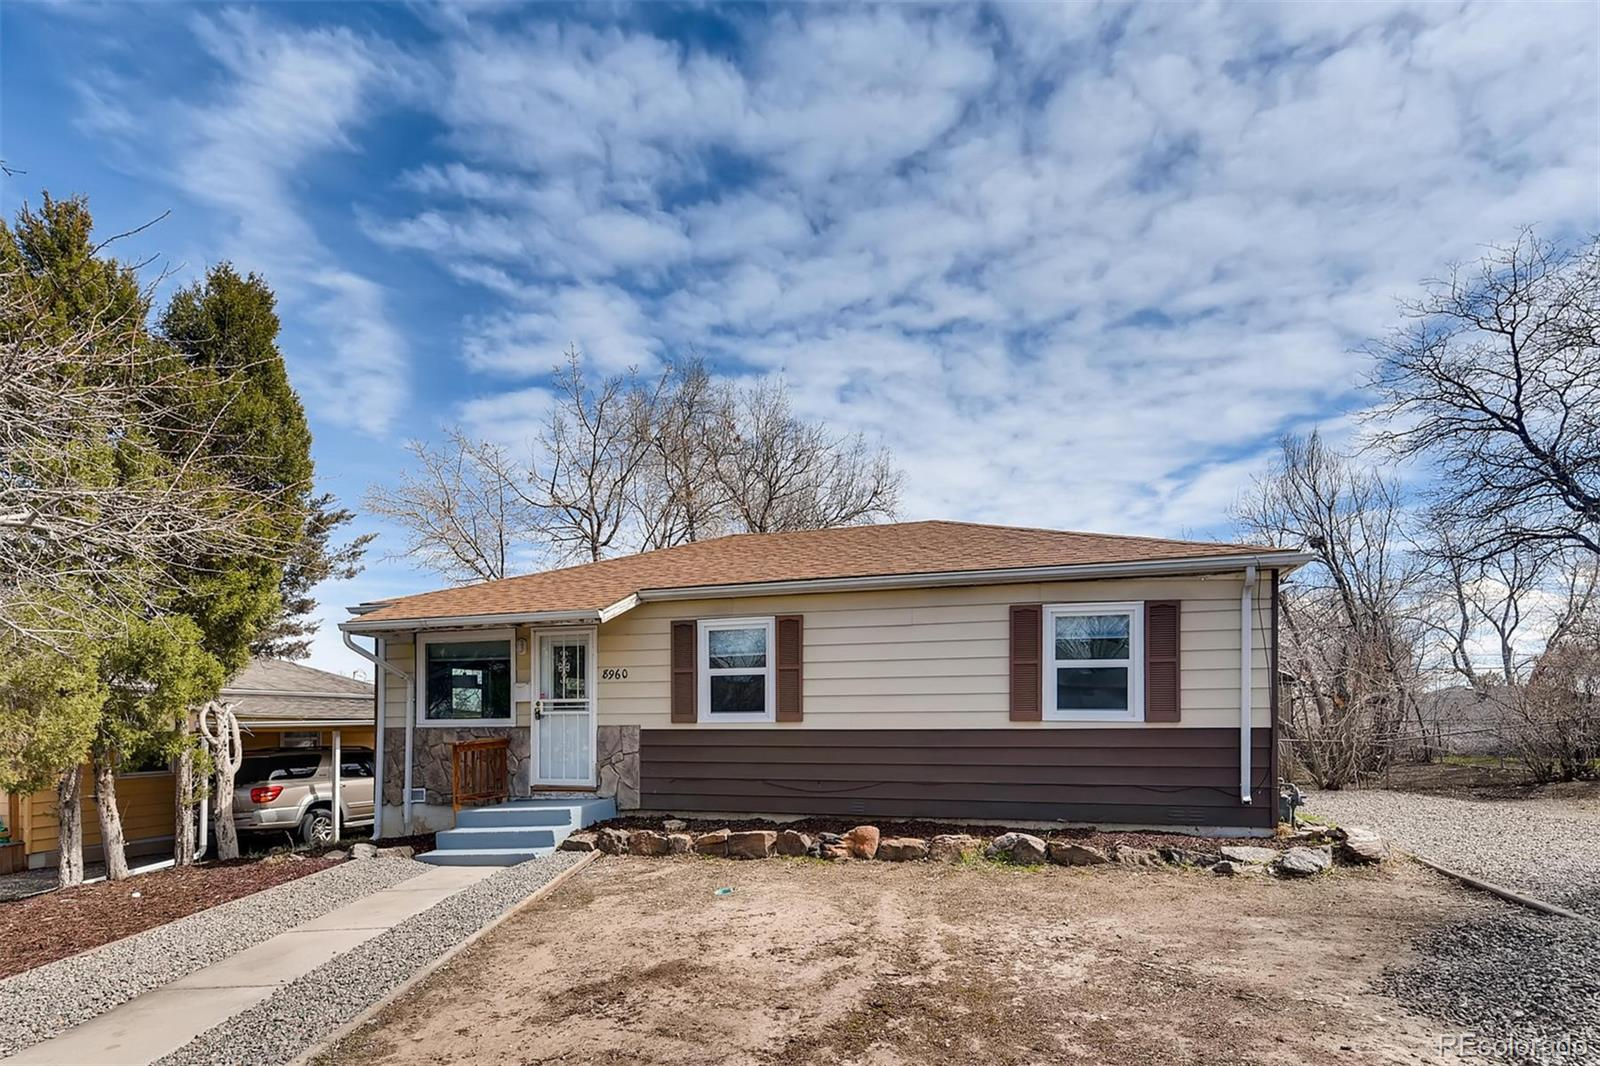 MLS# 9782894 - 8960 Utah Court, Thornton, CO 80229